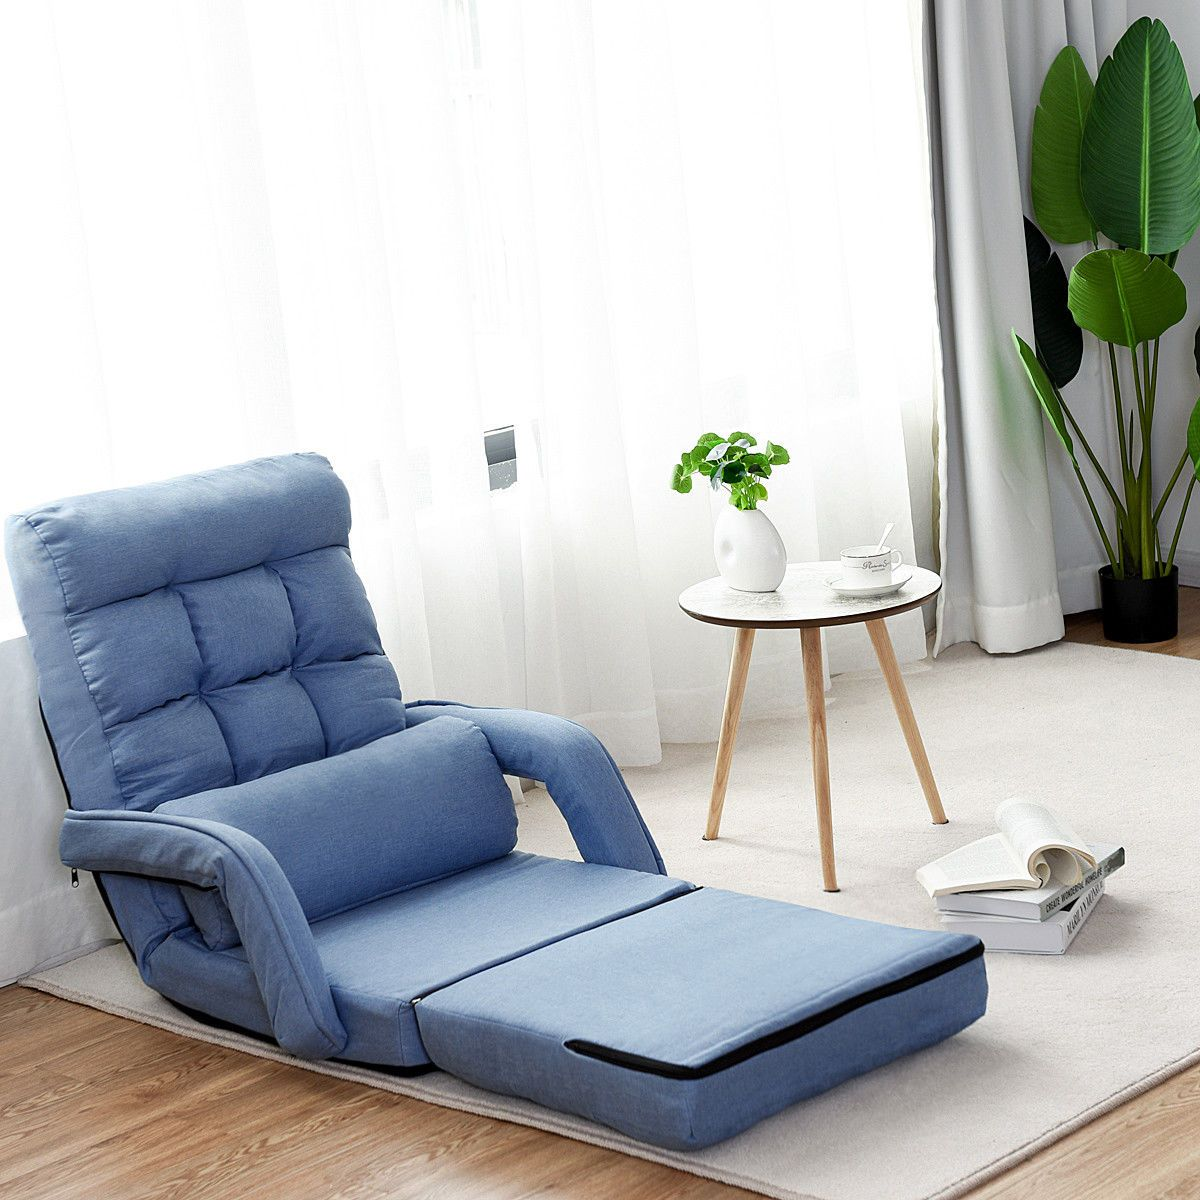 Blue folding lazy sofa floor chair sofa lounger bed with armrests